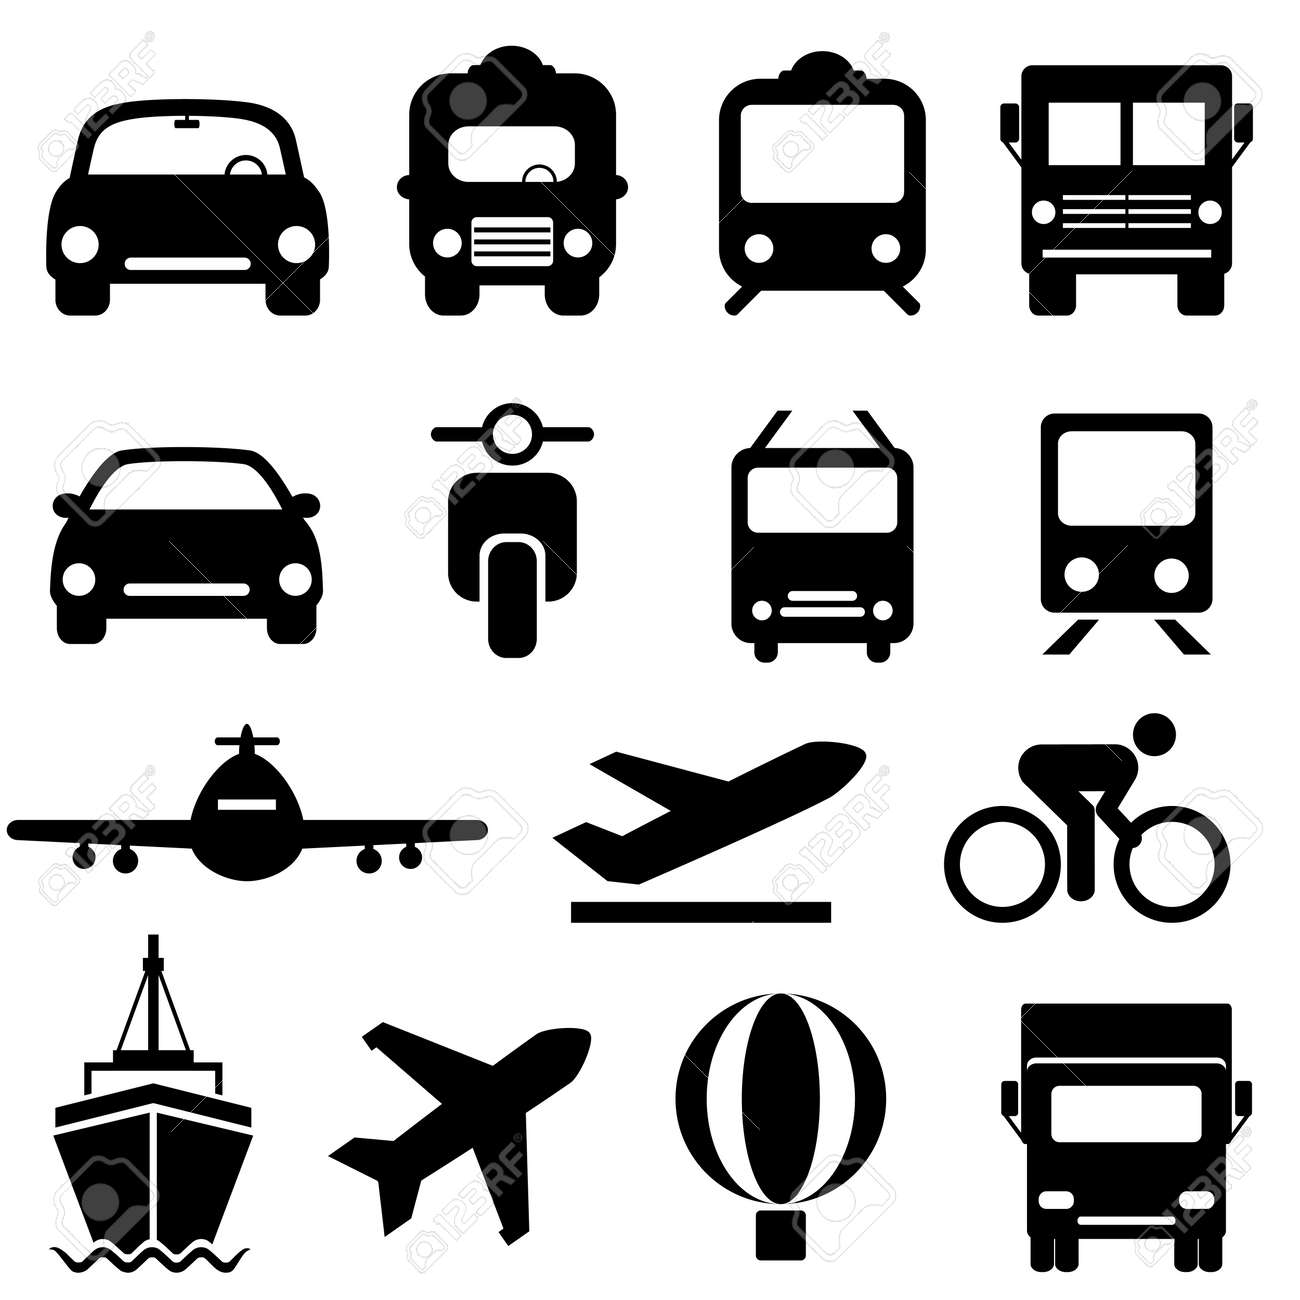 Transportation icon set in black Stock Vector - 23298090